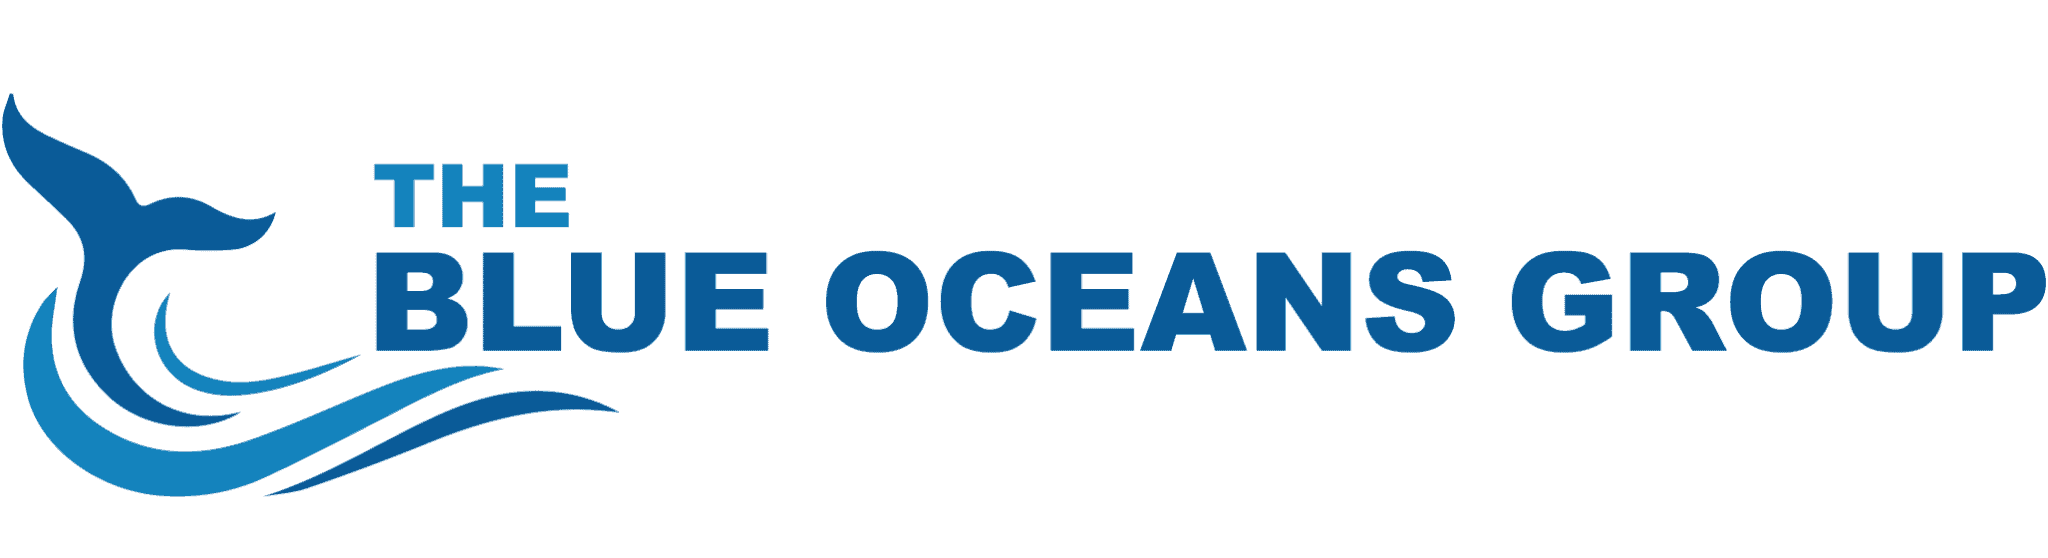 The Blue Oceans Group Logo